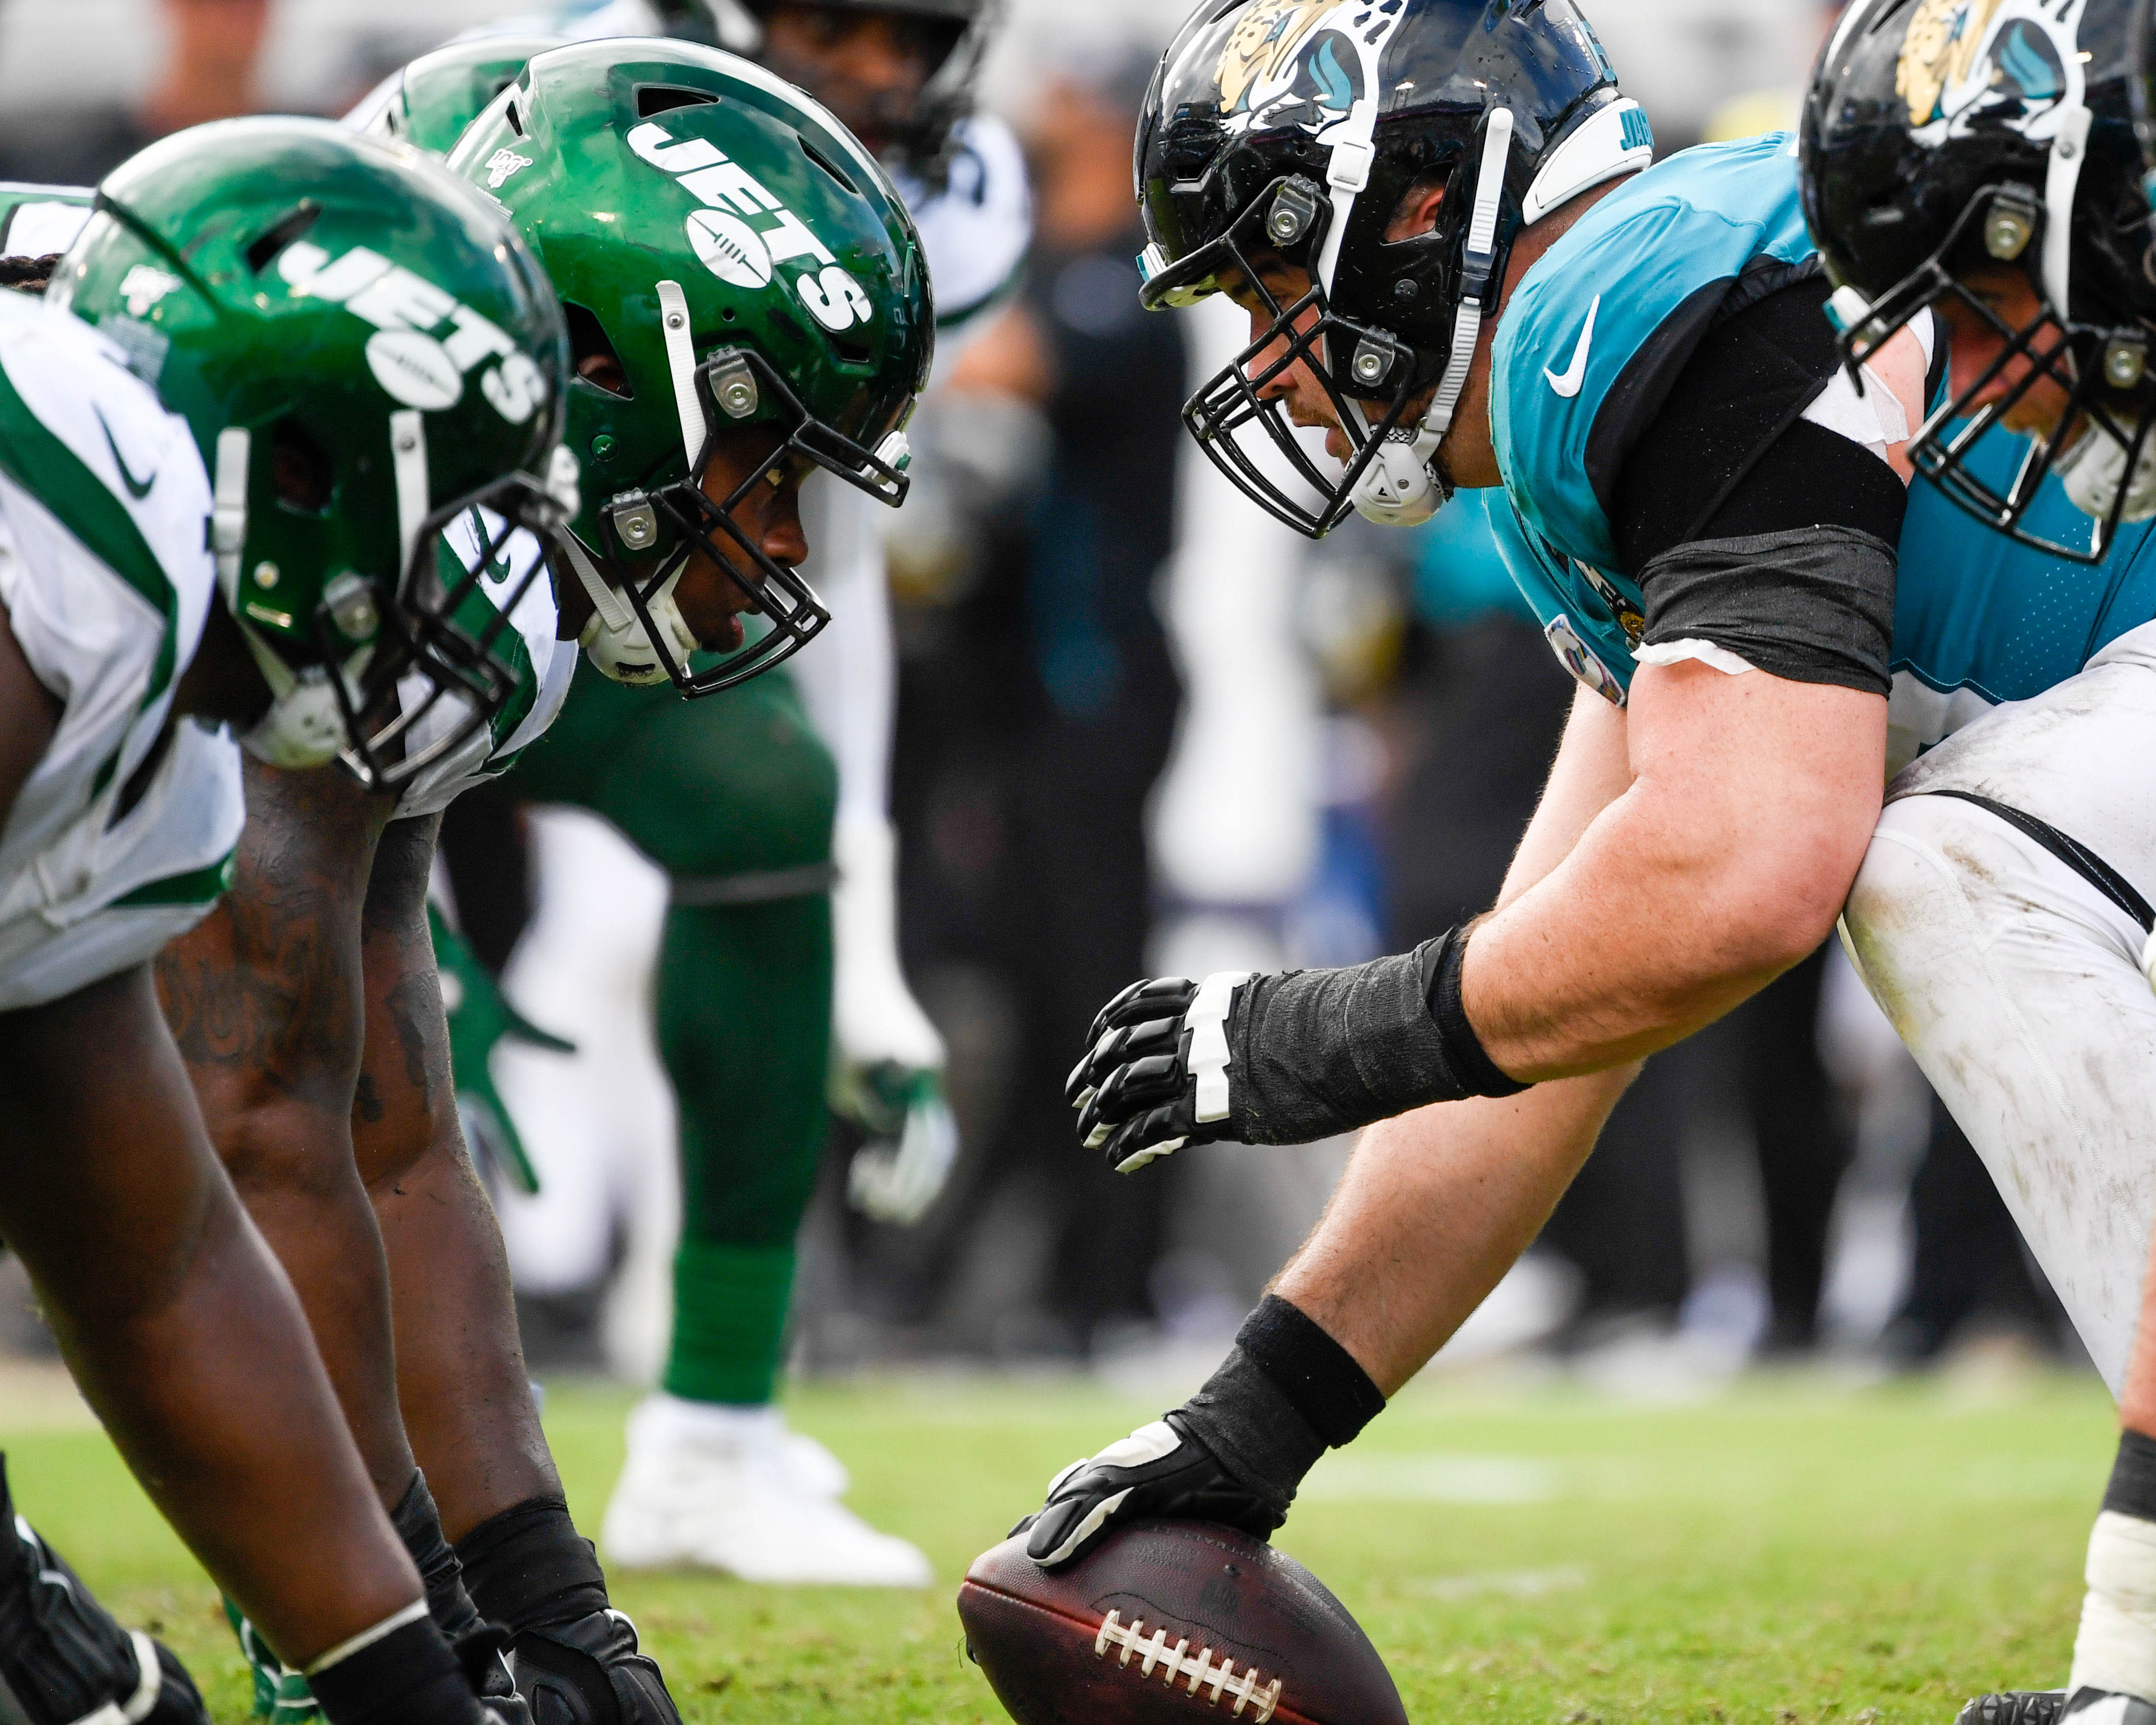 Inconsistent Jaguars Offensive Line Needs to 'Control the Line of Scrimmage' Over Final Weeks